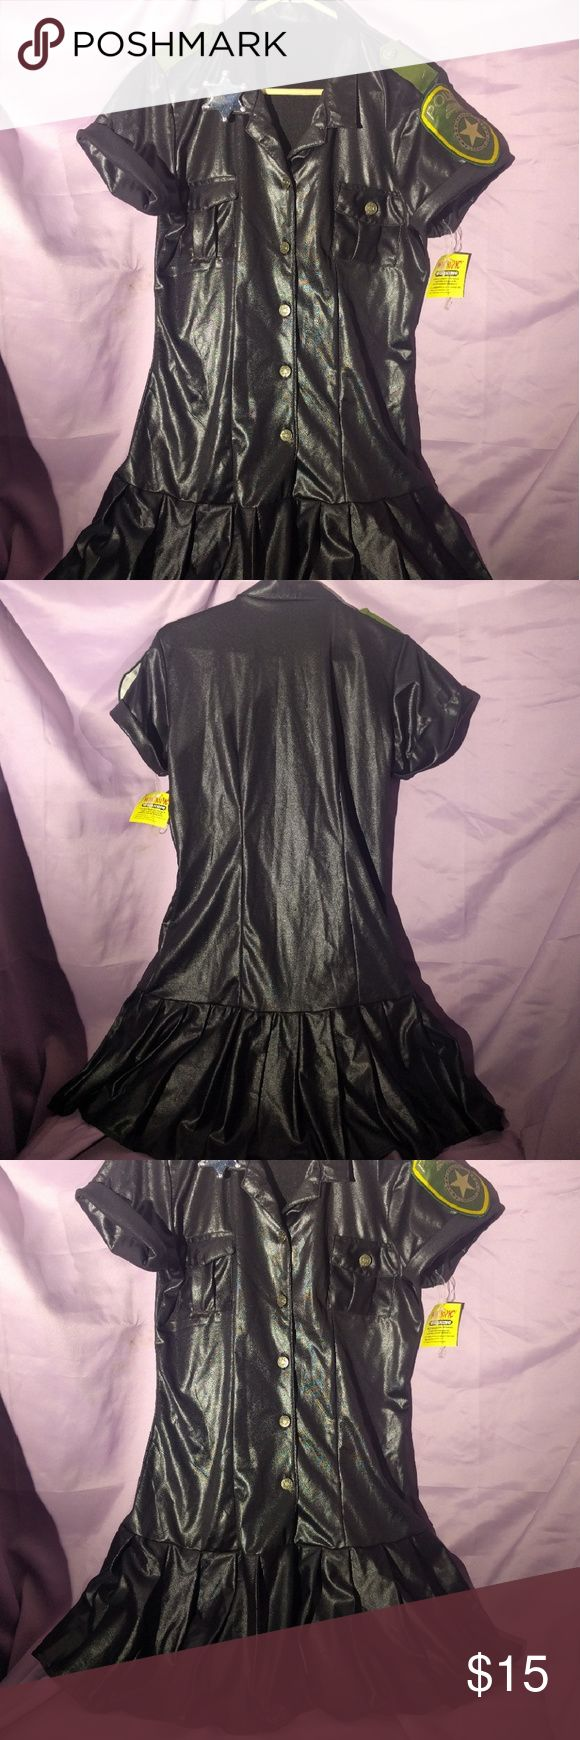 Sexy Cop police costume XL Hot topic Police cosplay L/XL fits around 12-16 based on it being just a bit small for me as a large 16. Hot Topic Dresses Mini